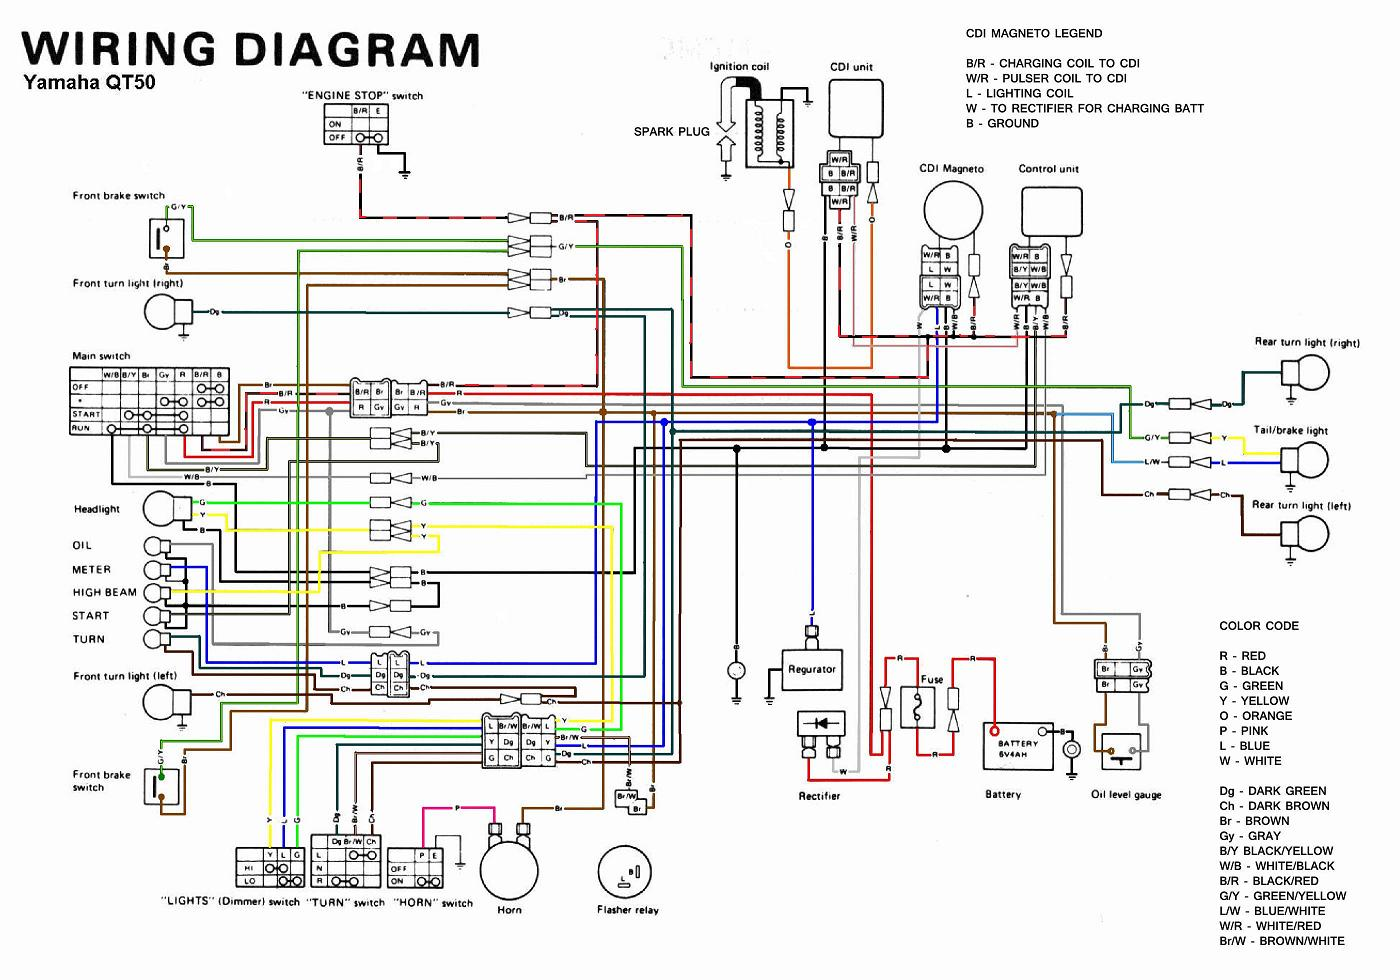 Yamaha Control Diagram Reinvent Your Wiring Outboard Qt50 Luvin And Other Nopeds Rh Net